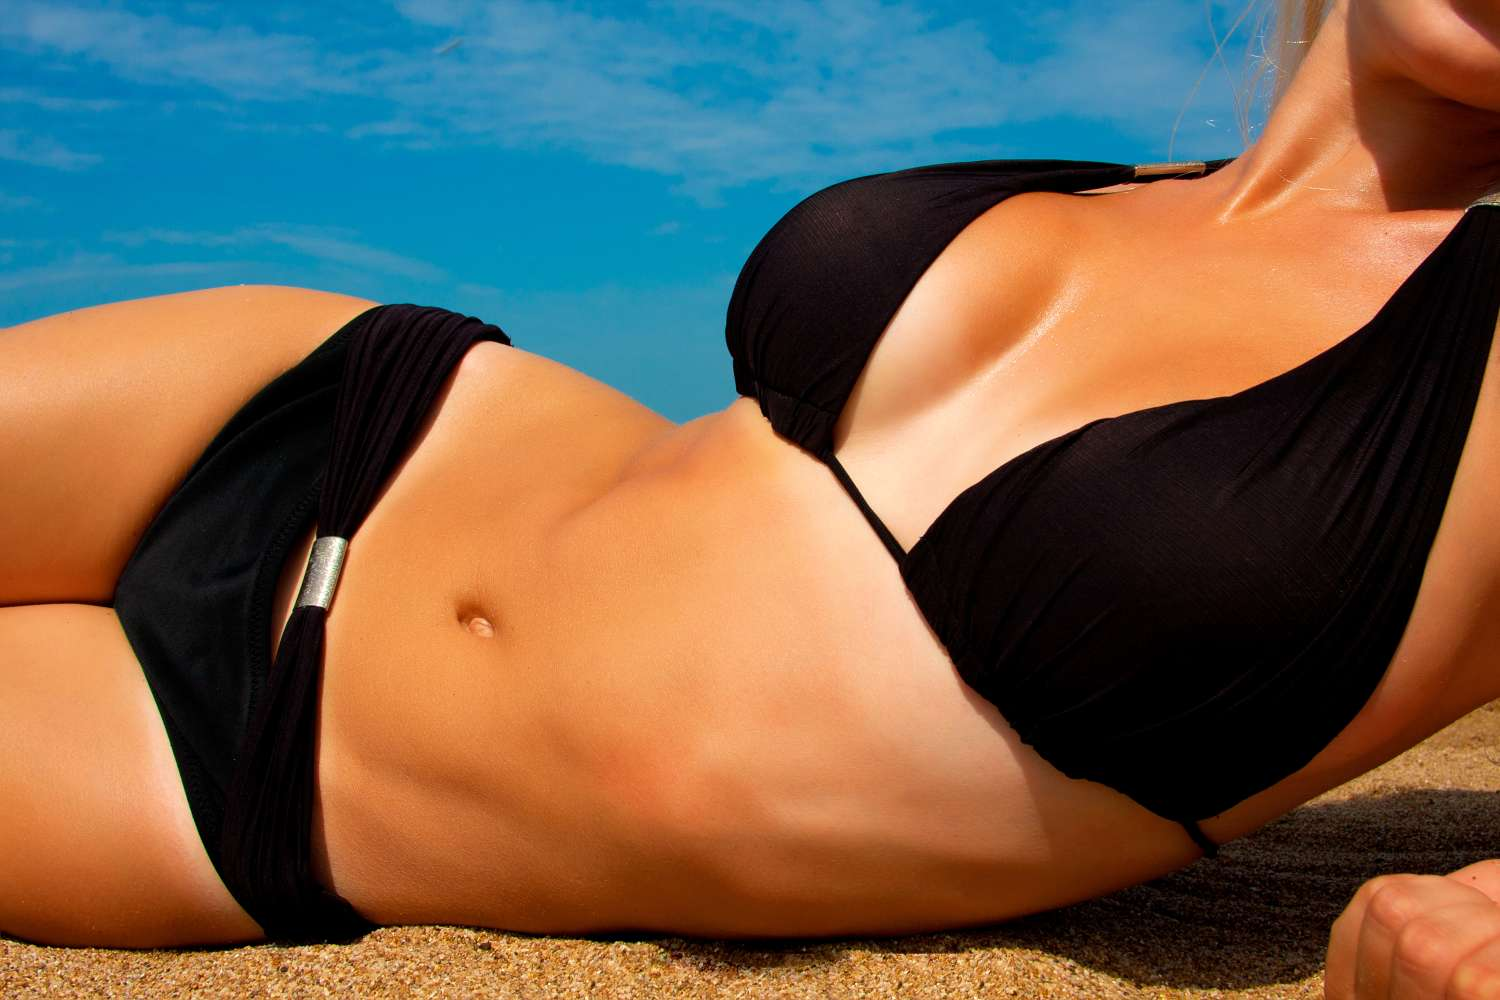 I want to have liposuction to avoid exercise